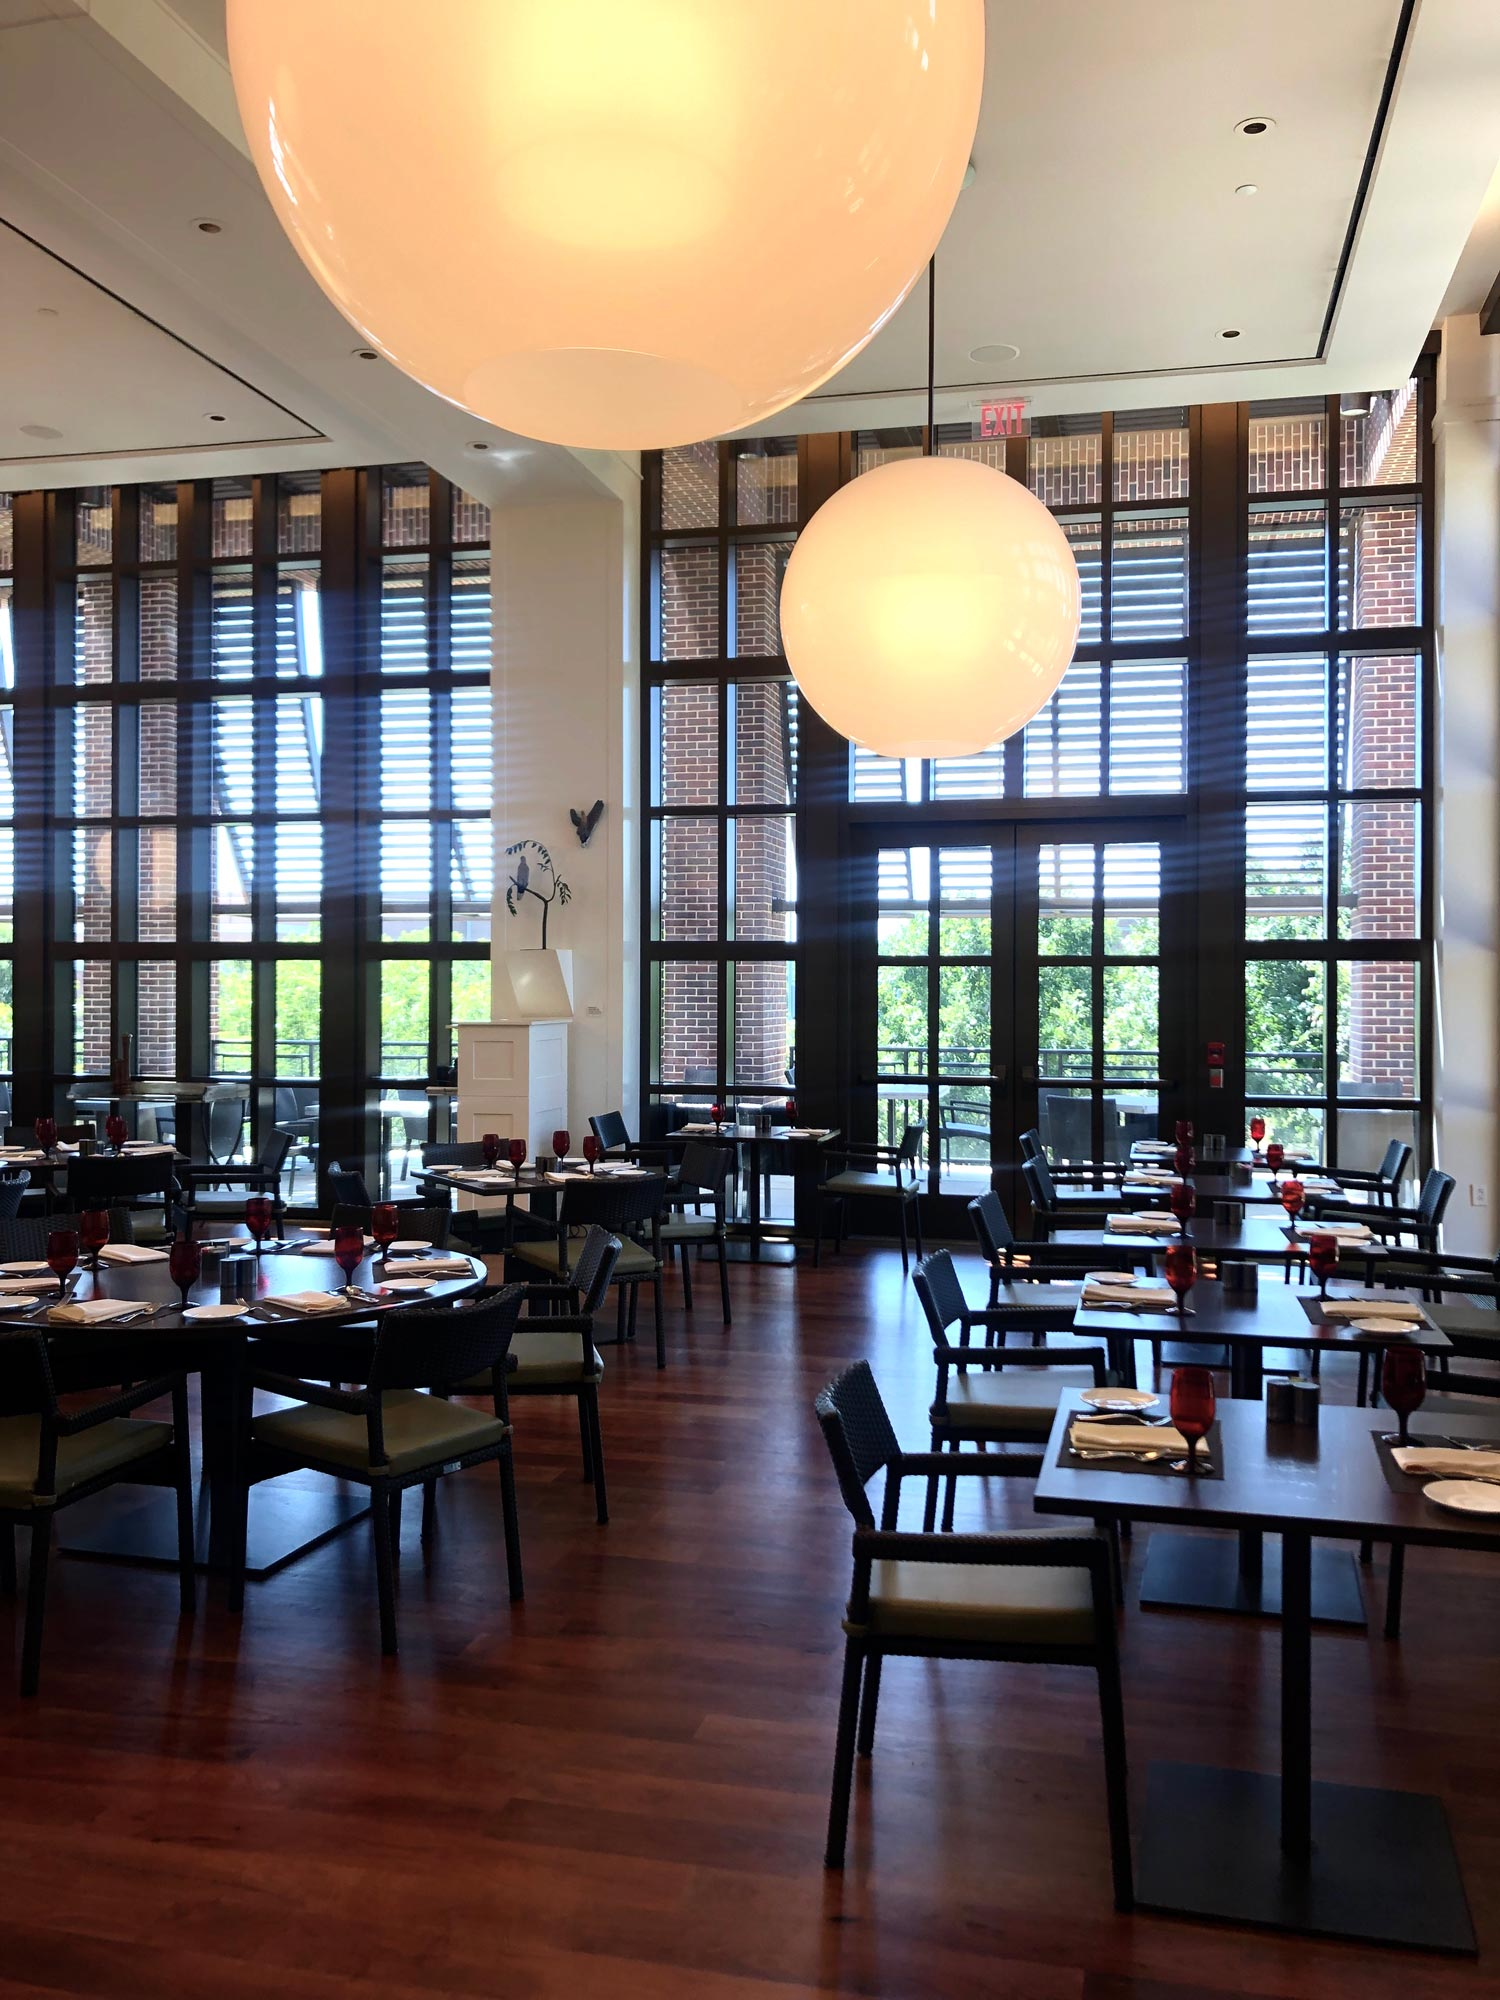 Cafe-43-George W Bush Presidential Center.jpg